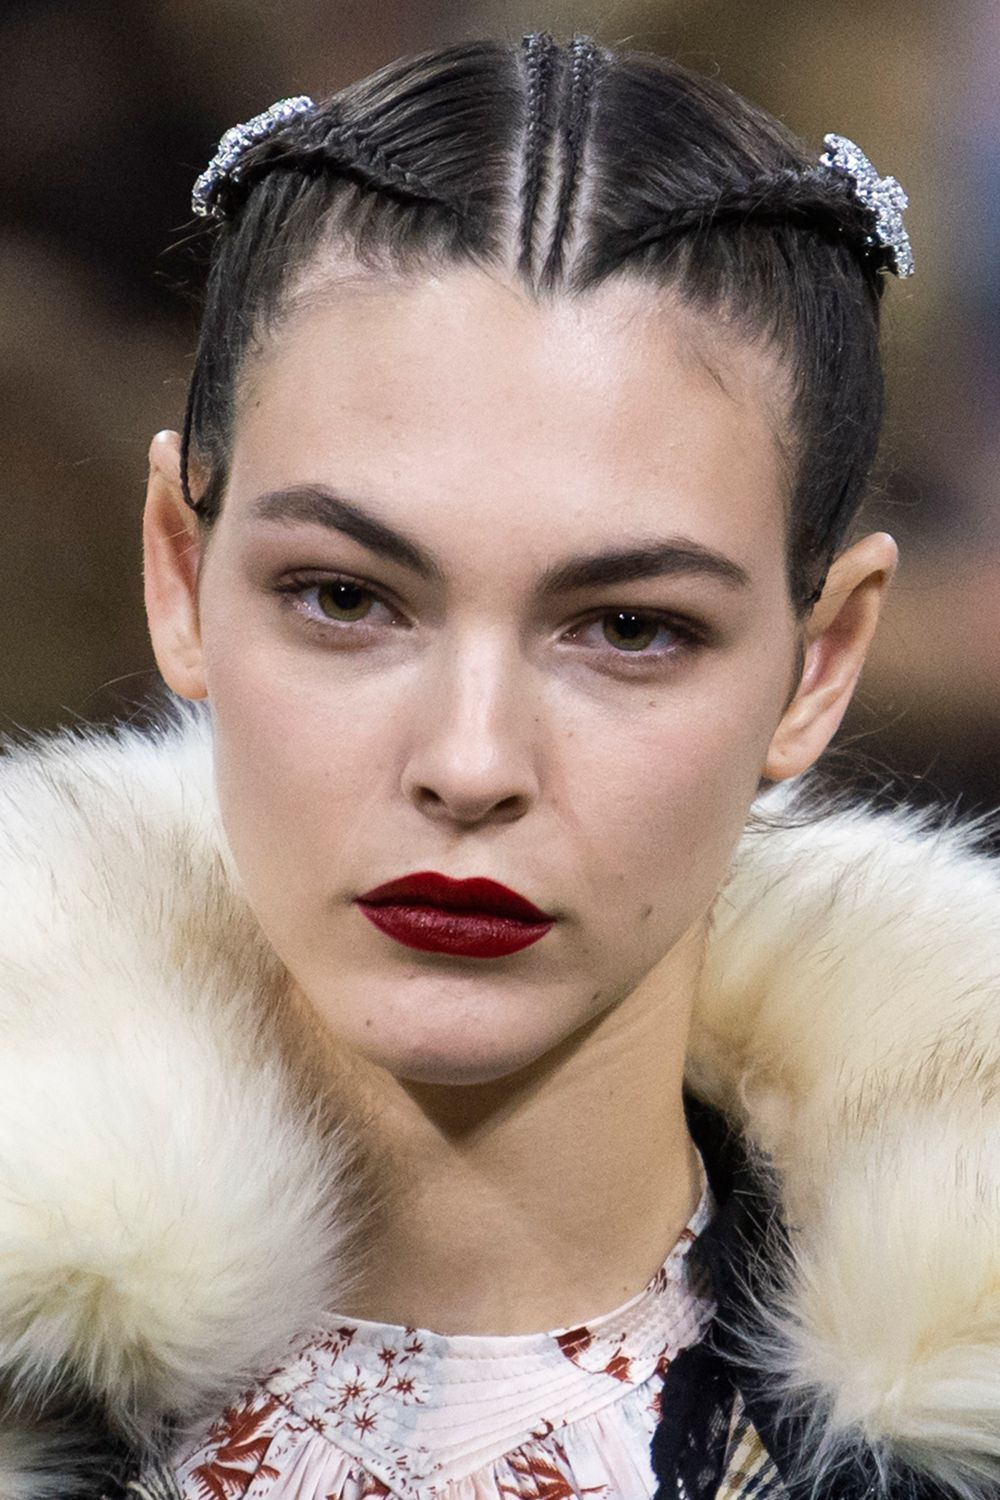 7 Autumn Winter 2019 Make Up Trends To Start Wearing Now Makeup